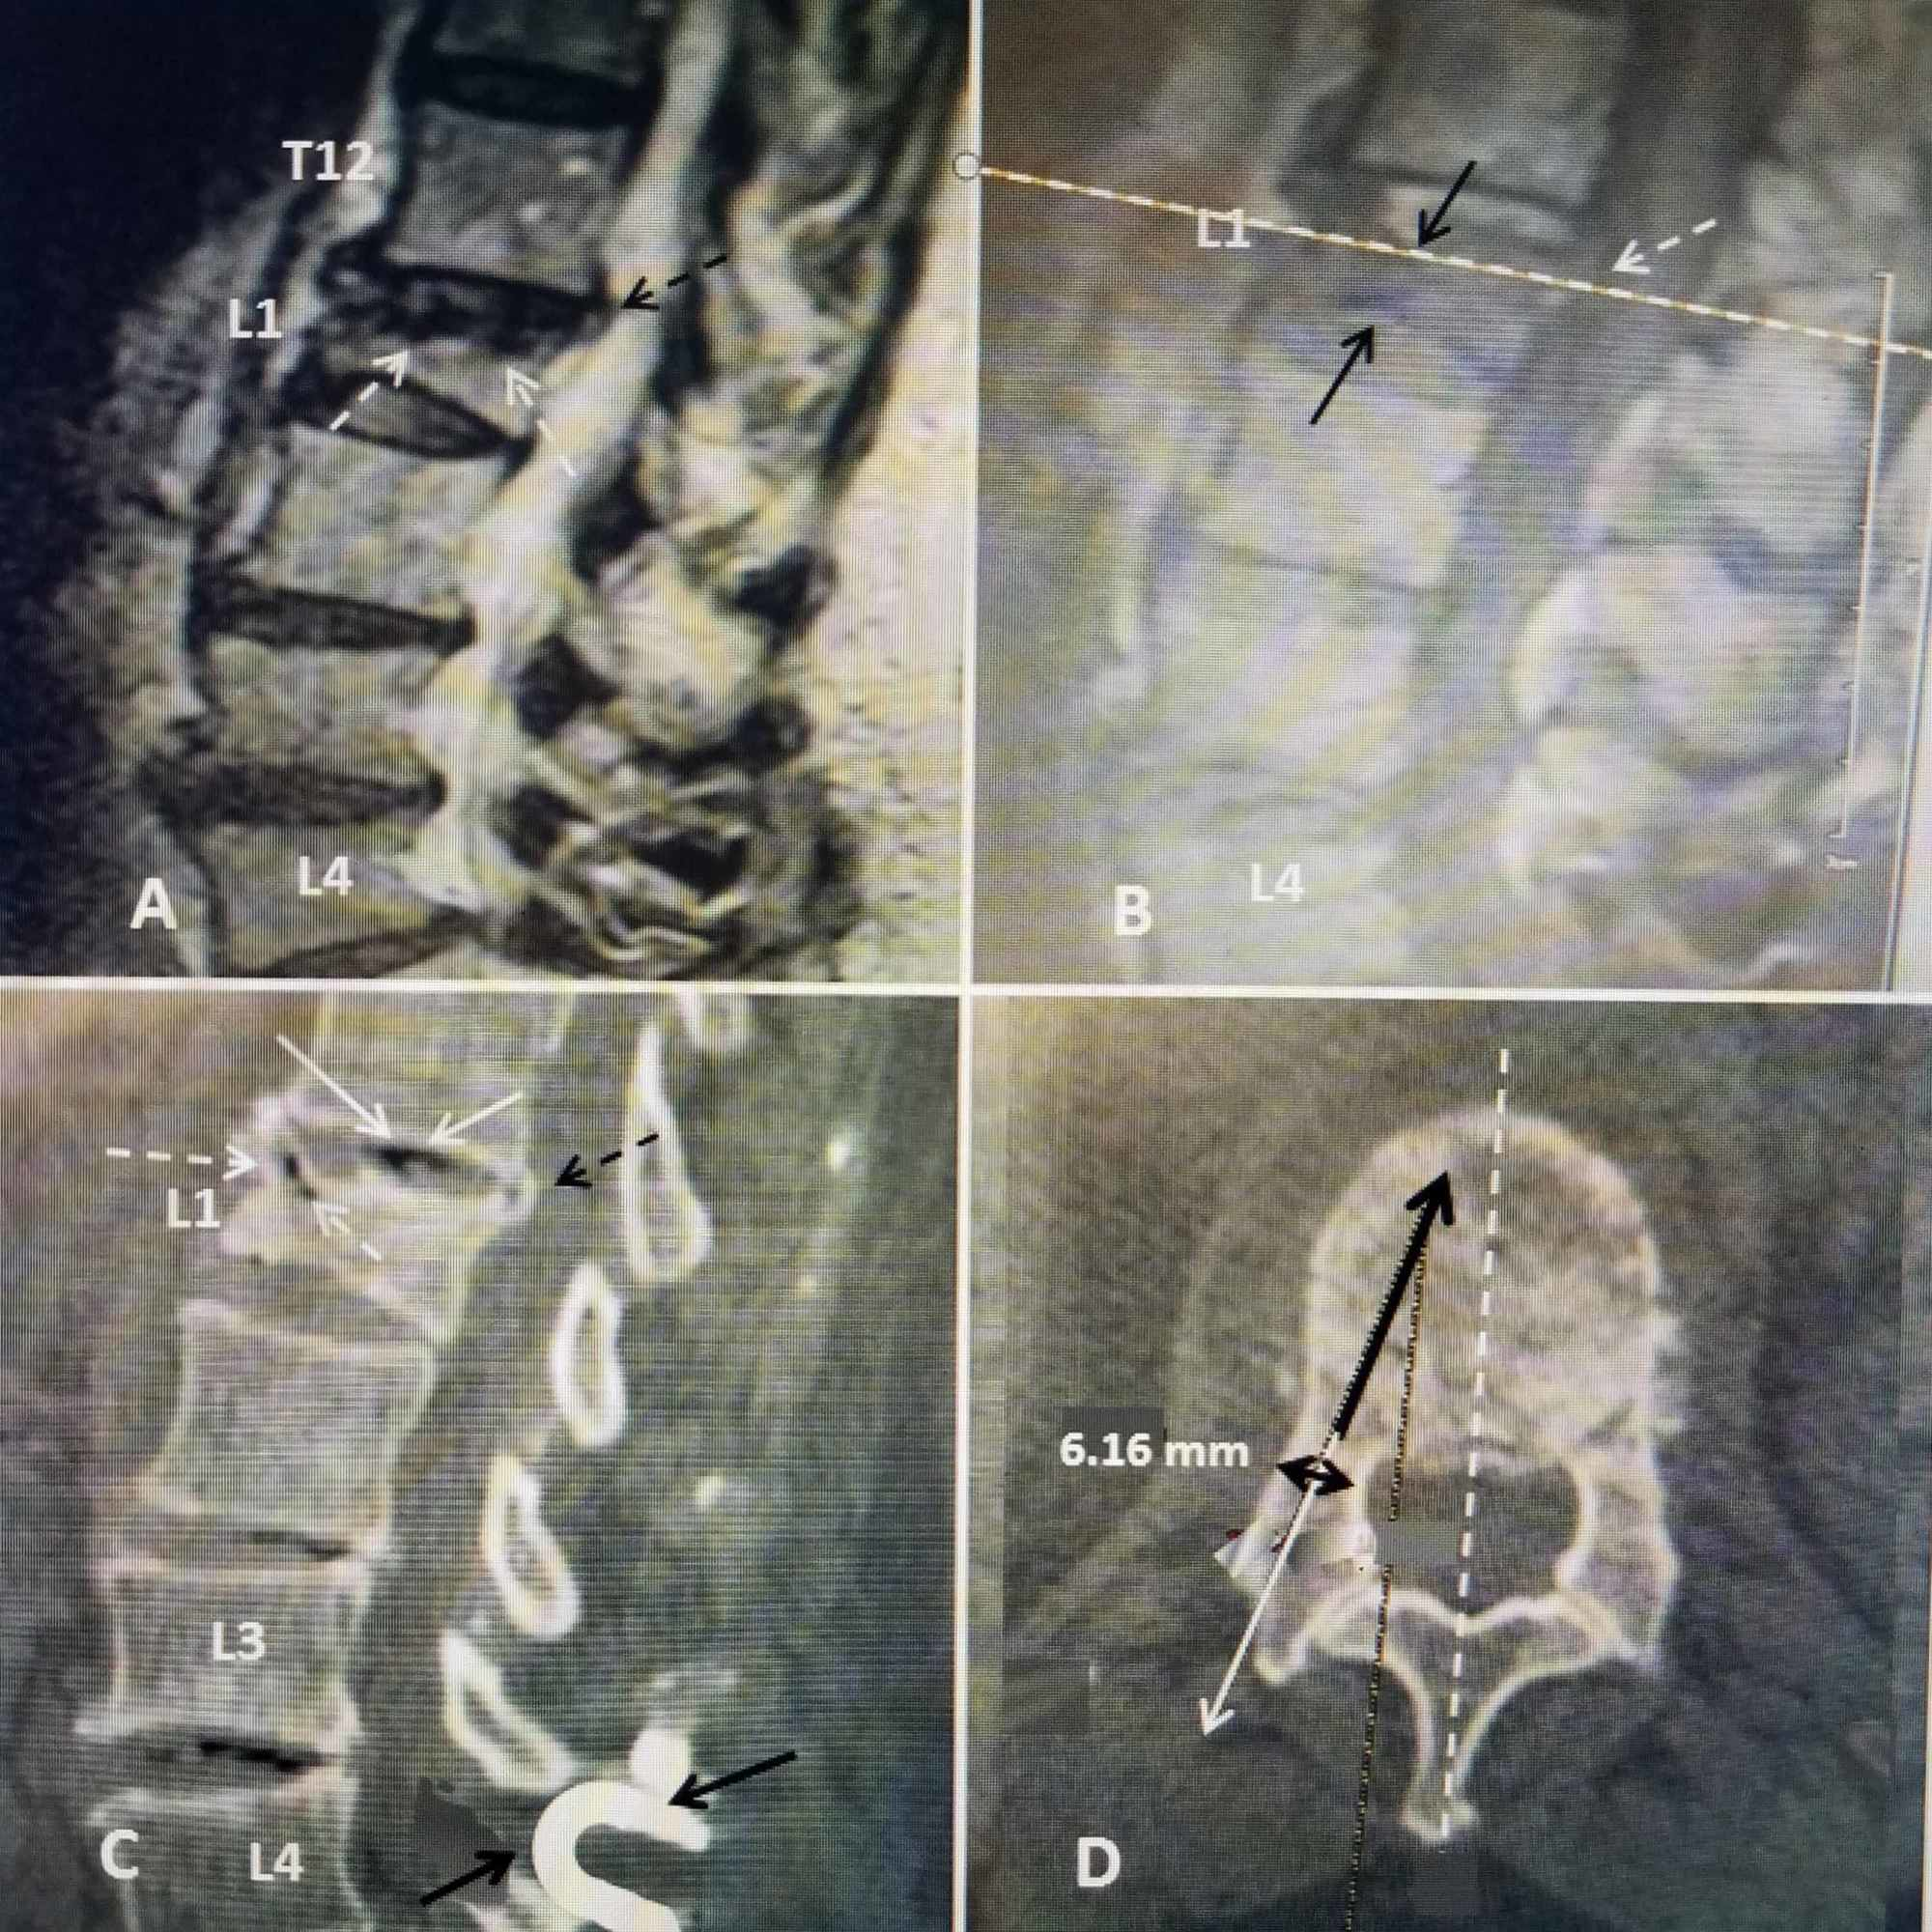 Cureus Treatment Of A High Risk Thoracolumbar Compression Fracture Using Bilateral Expandable Titanium Spinejack Implants